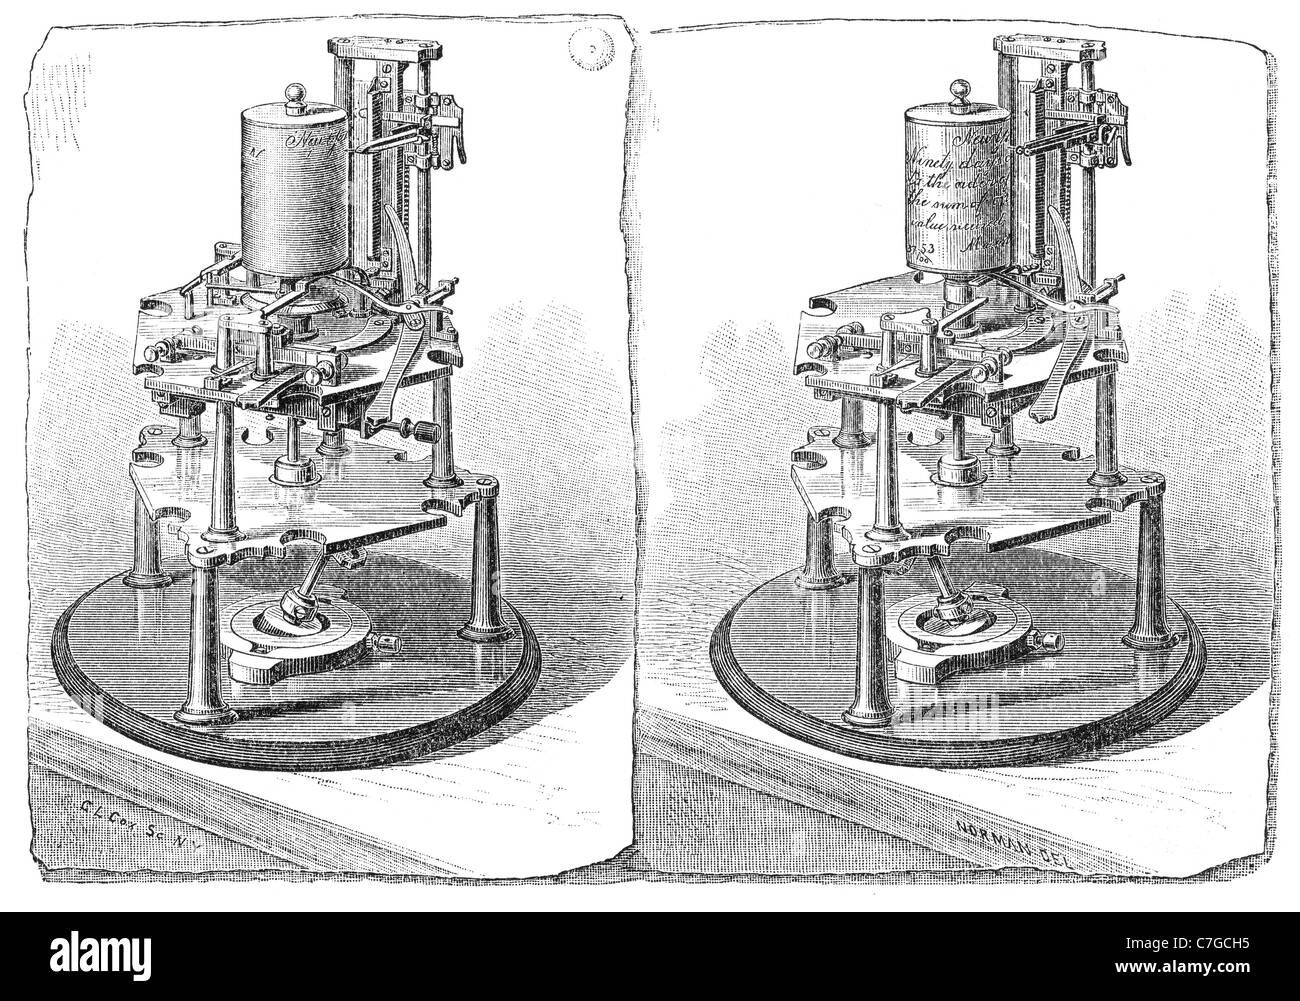 Receiver and Transmitter of the Cassell Autographic Telegraph. Illustration from a 1881 magazine. - Stock Image